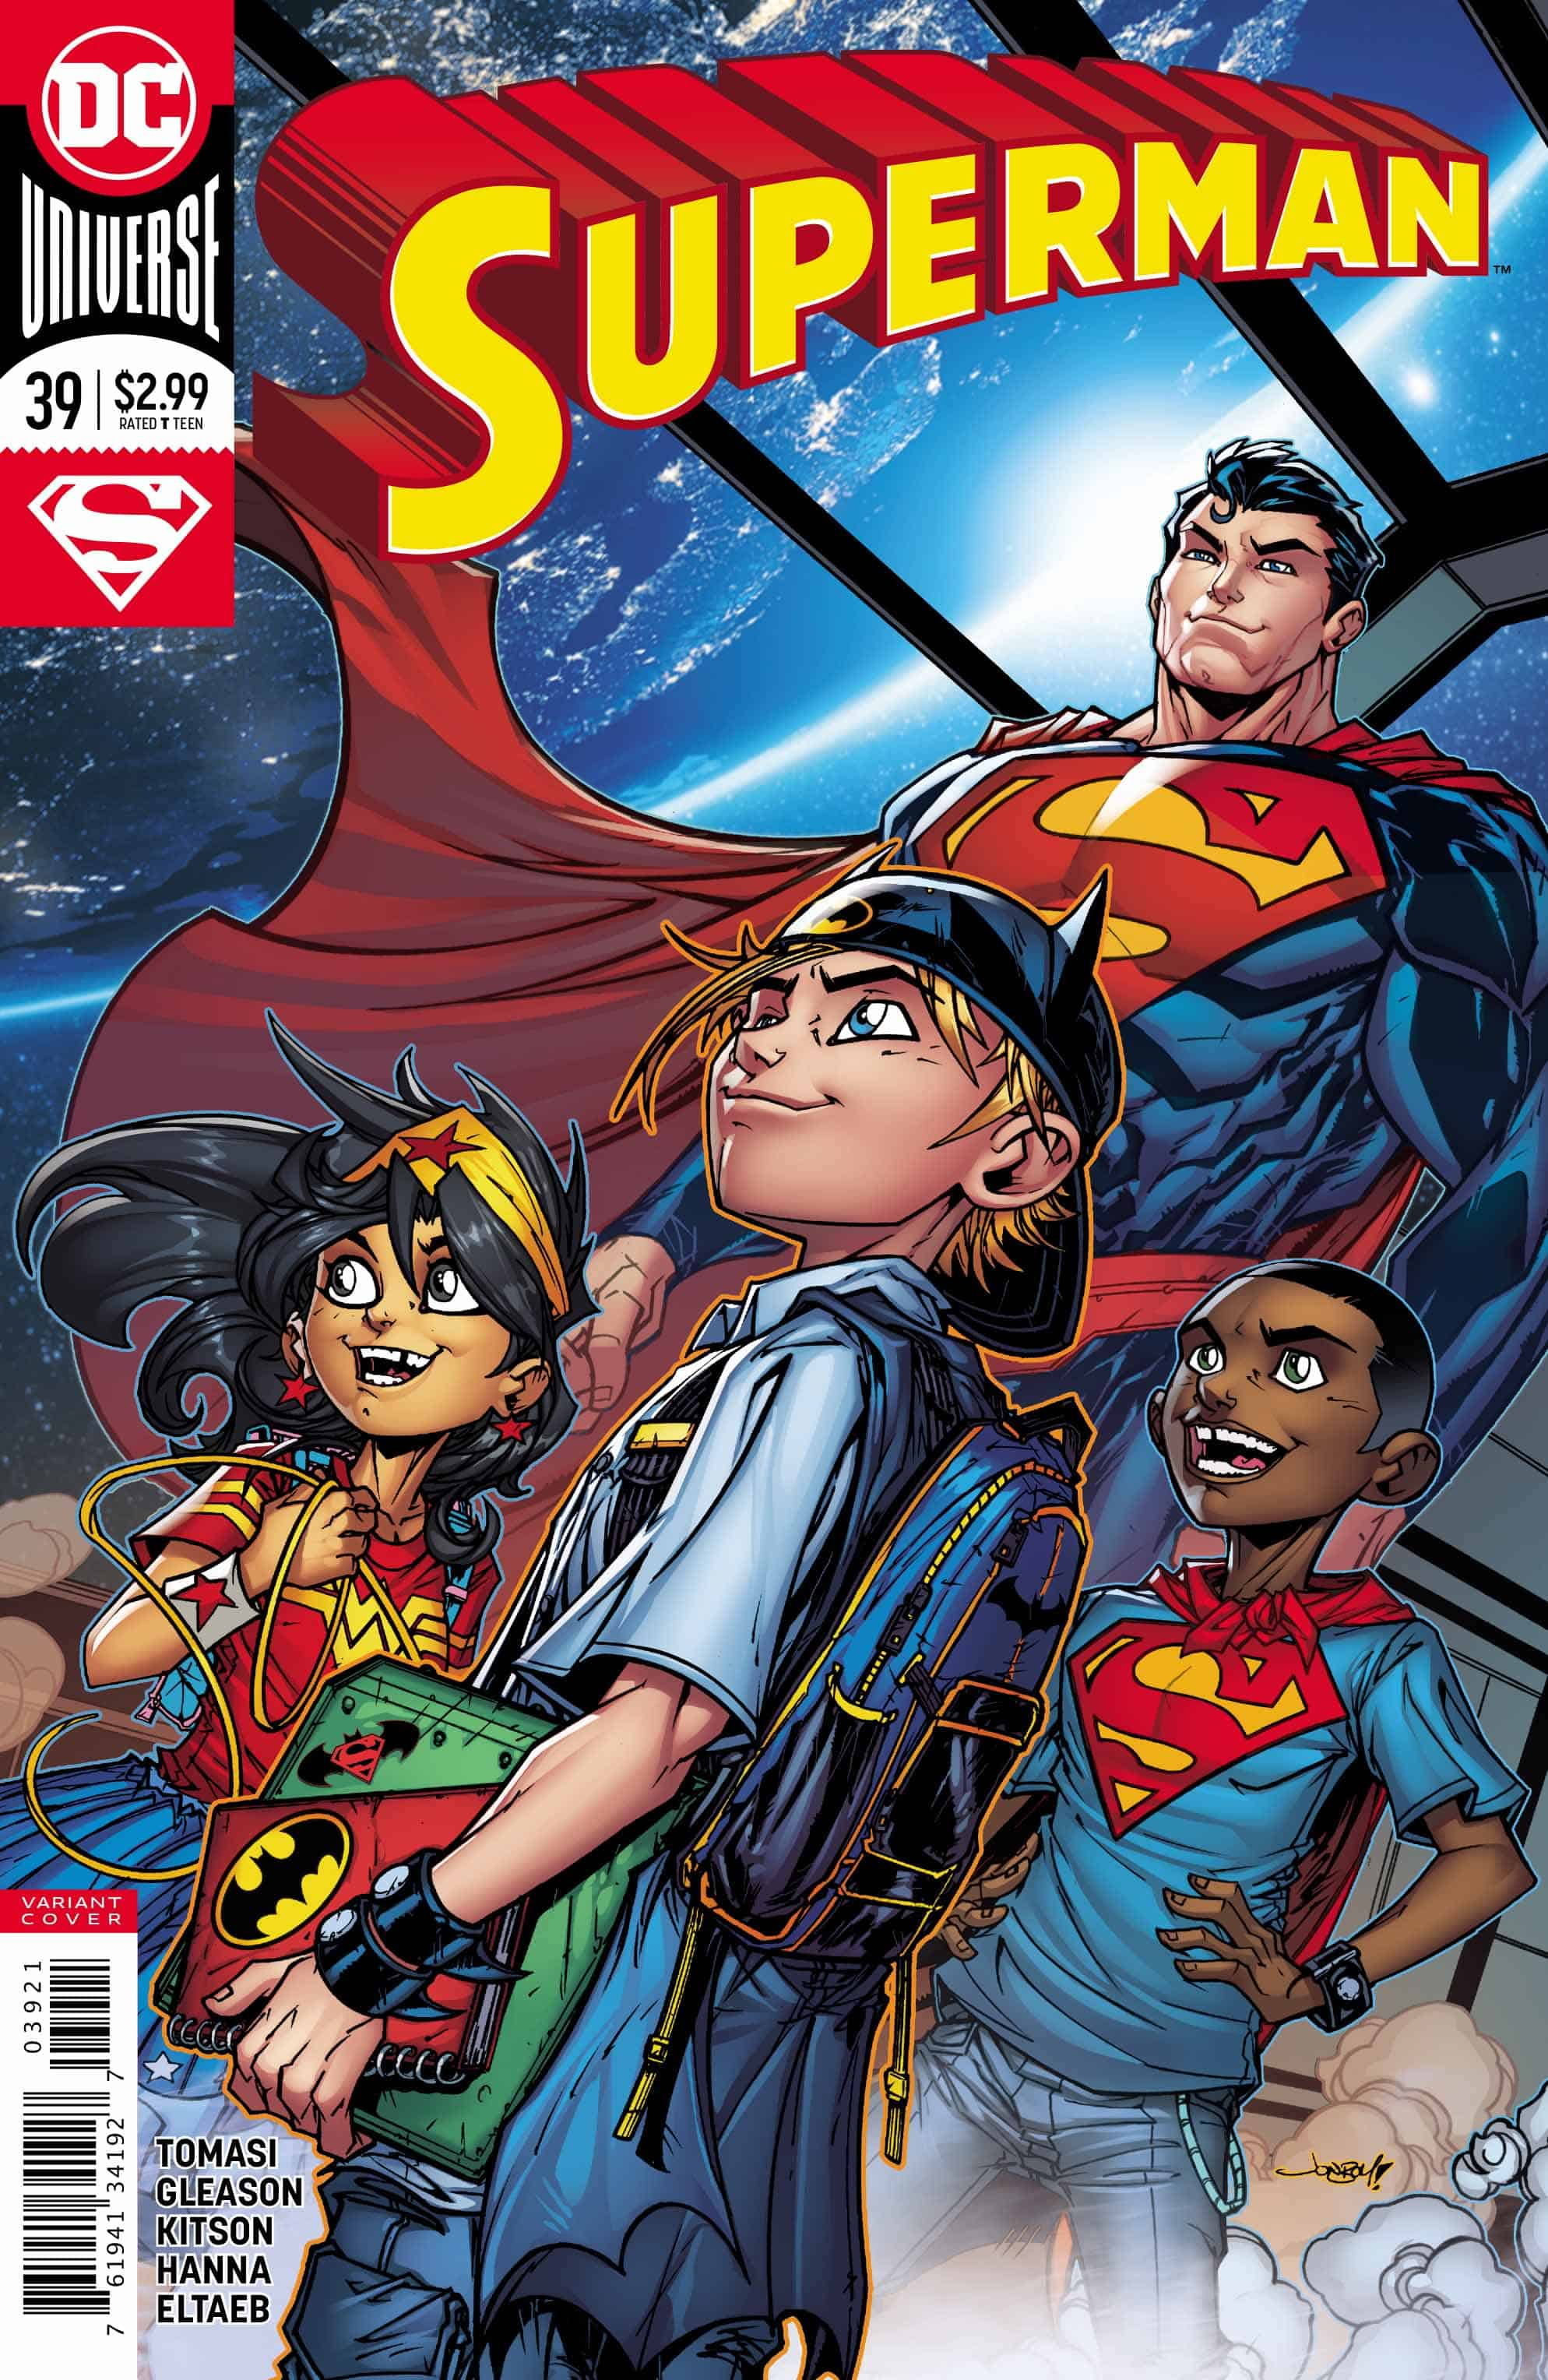 Superman 39_variant cover